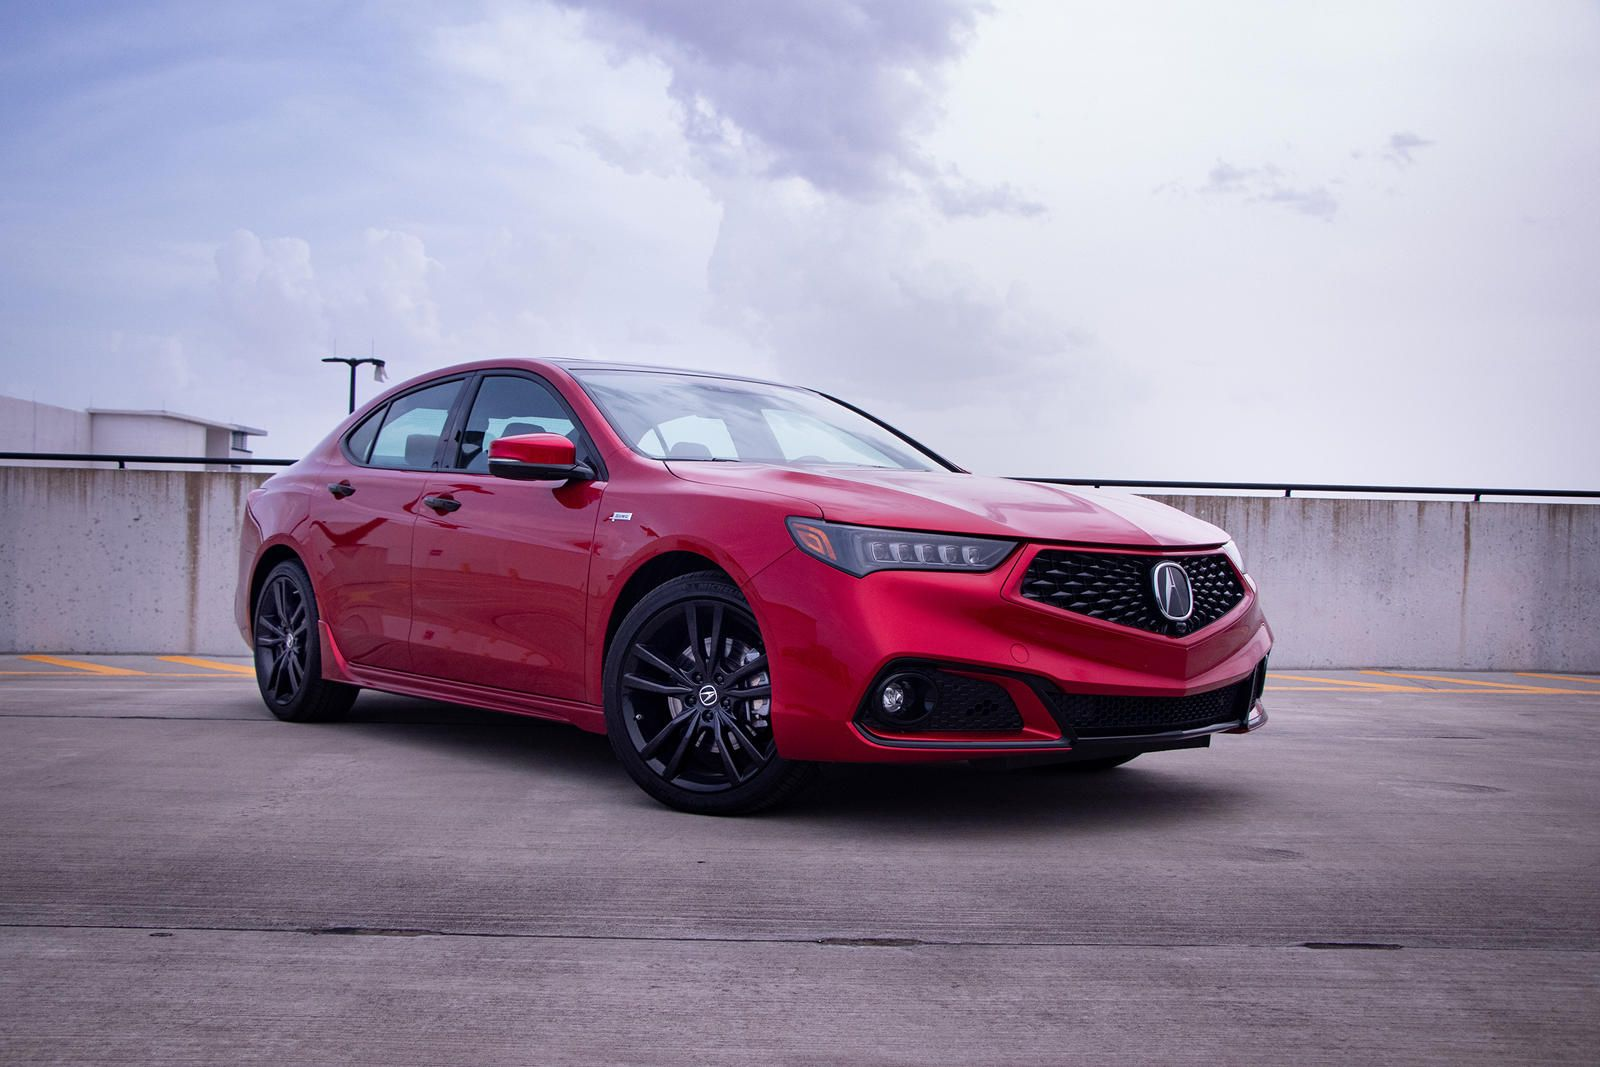 2020 Acura Tlx Test Drive Review An Eye Catching Farewell In 2020 Acura Tlx Acura New Bmw